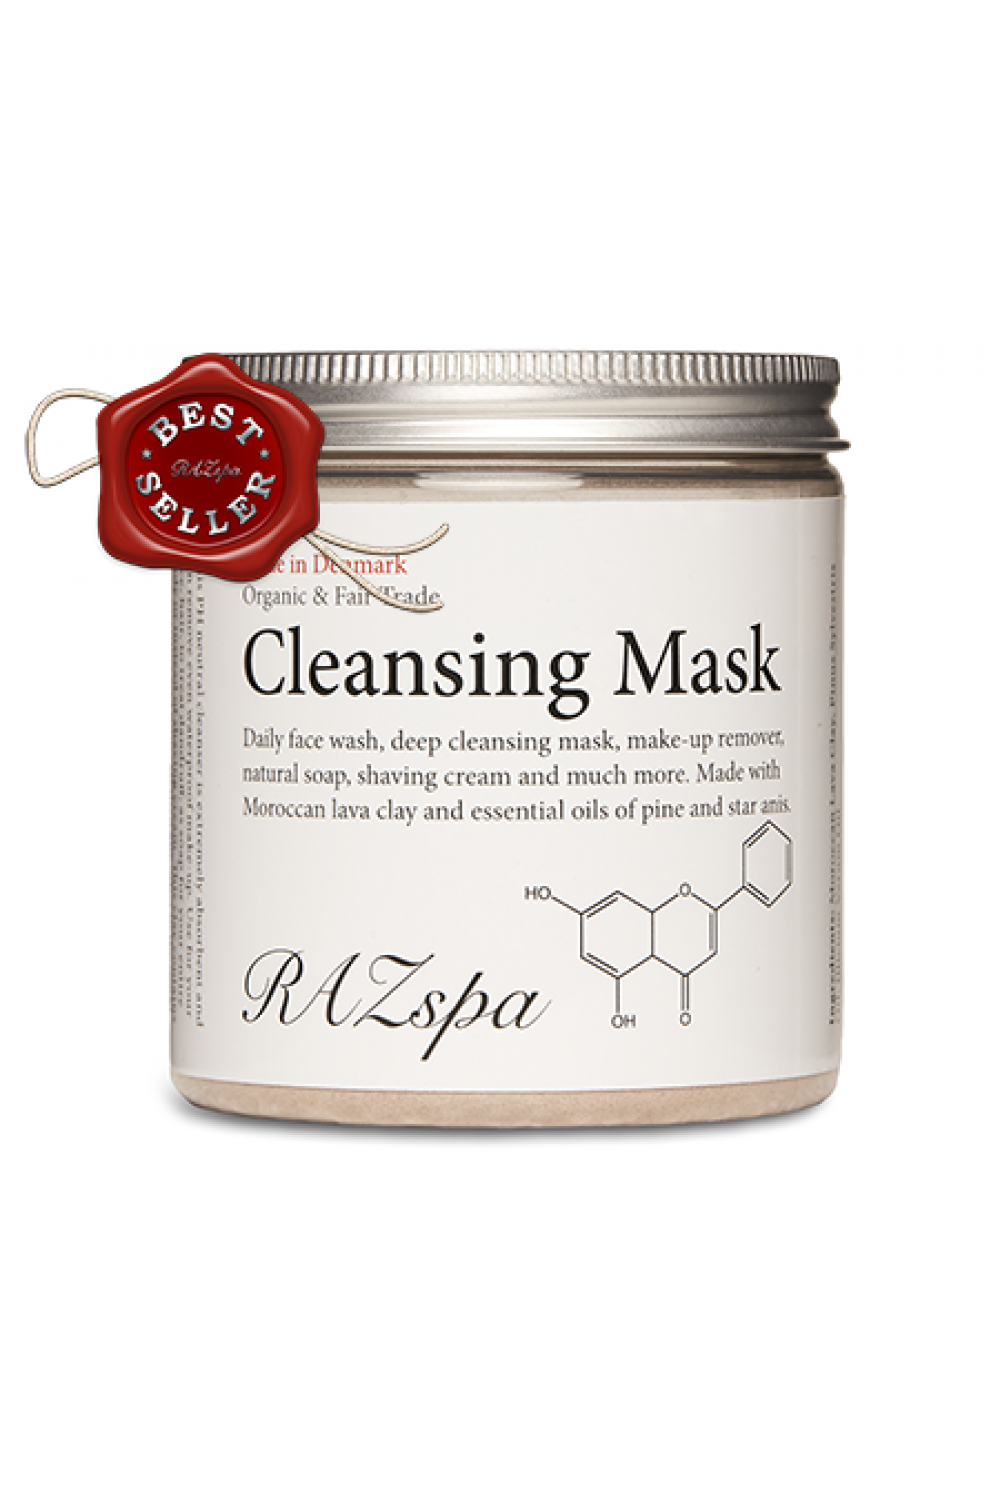 Cleansing Mask 200G – Organic and Fair Trade